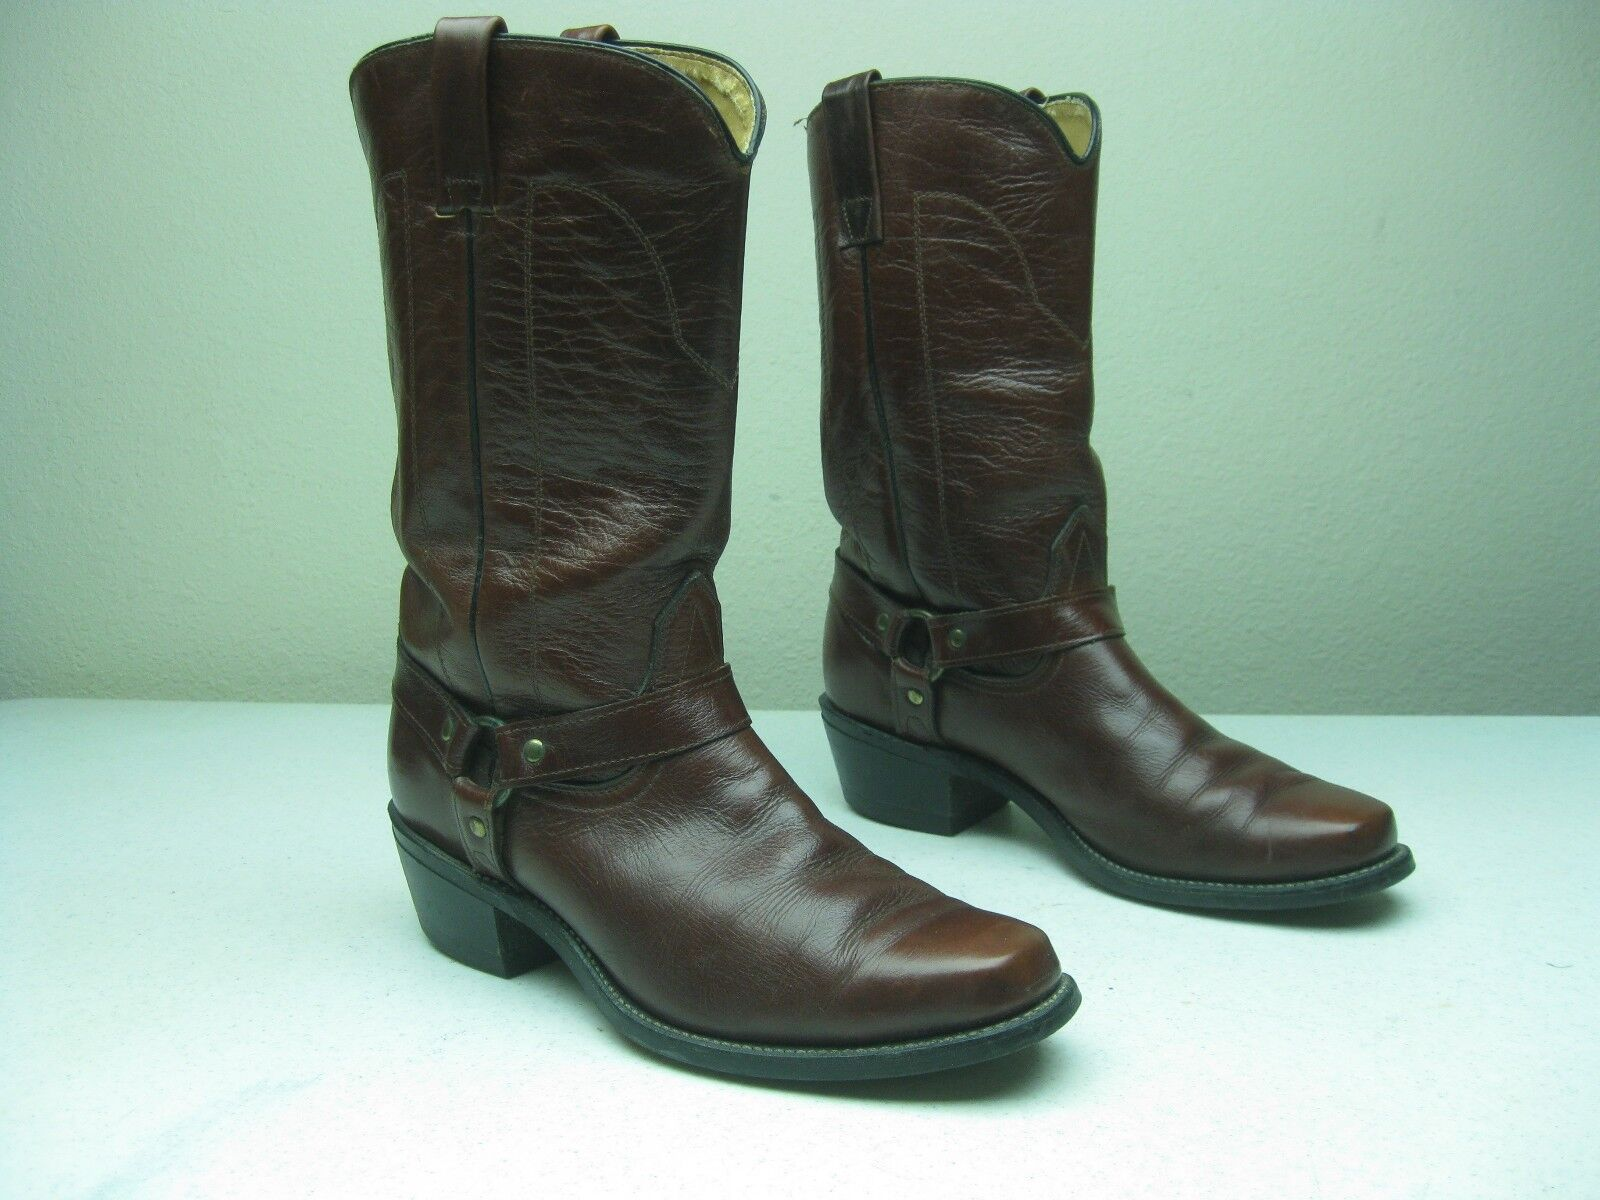 VINTAGE MASON HARNESS OXBLOOD MADE IN  A SQUARE TOE HARNESS MASON ROCKABILLY BOOTS 8.5D 0d9243